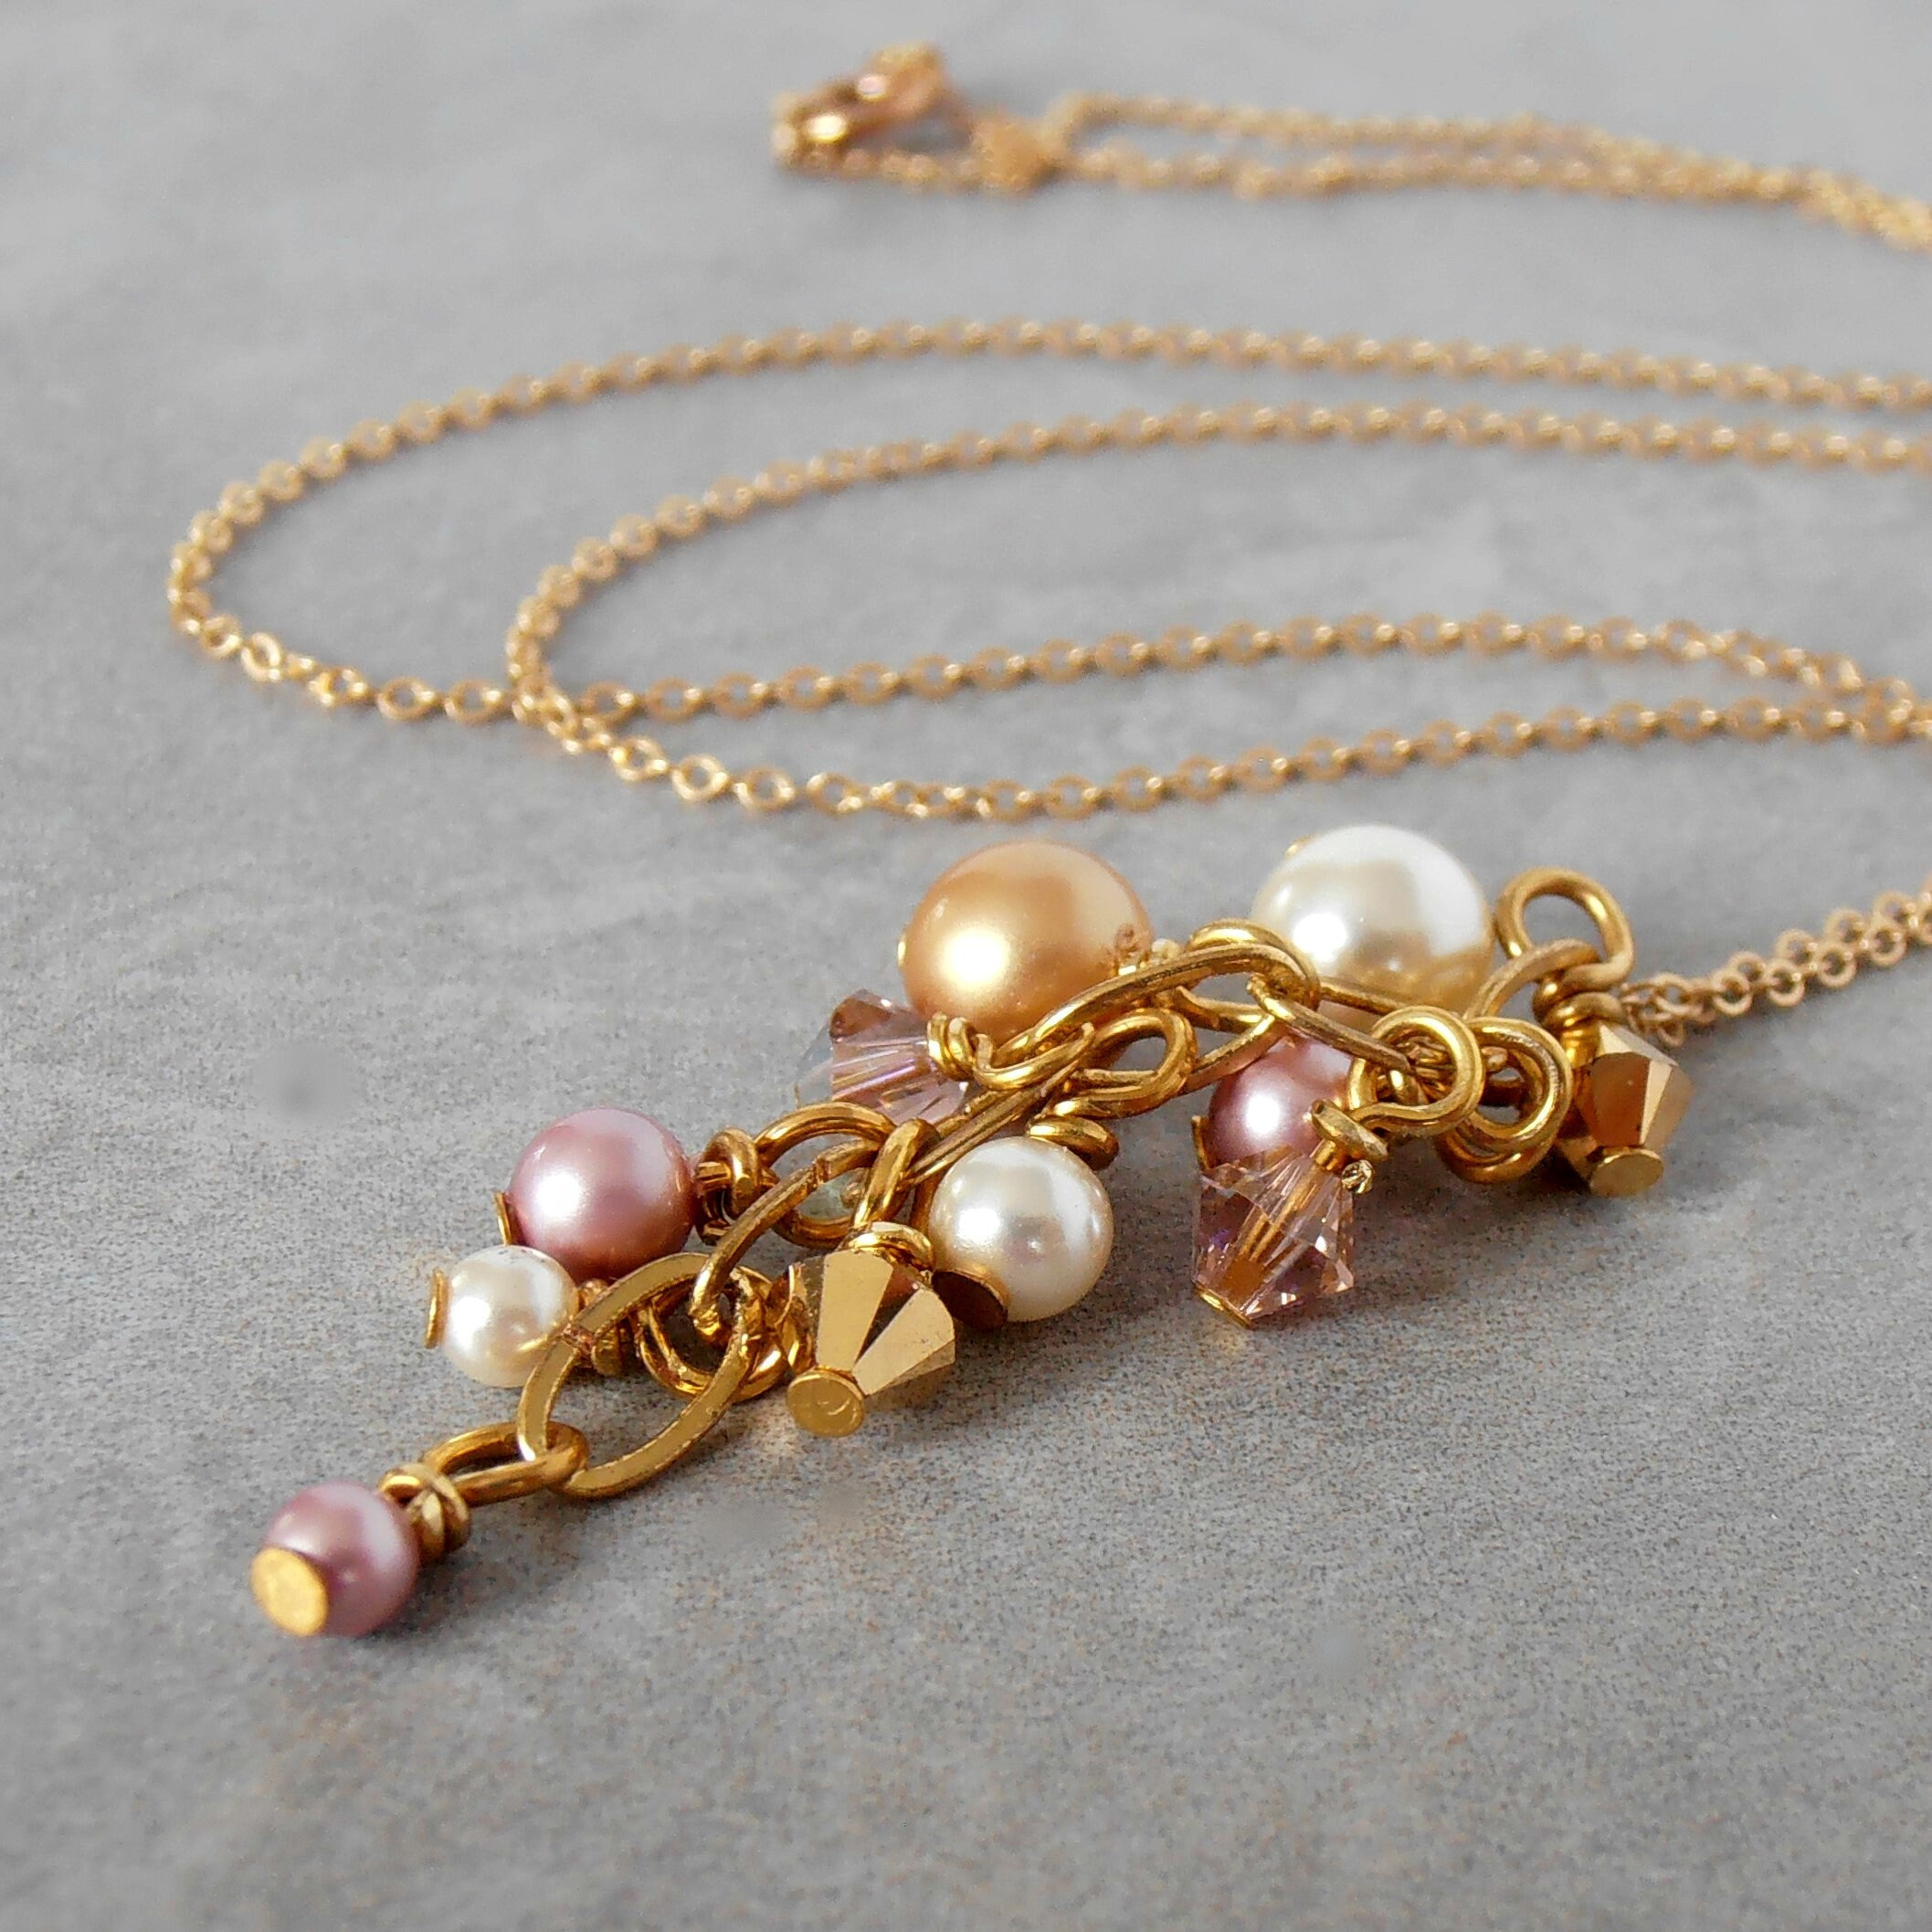 Bridesmaid Jewelry Pink Mauve and White Colored Faux Pearl Necklace with Silver Chain